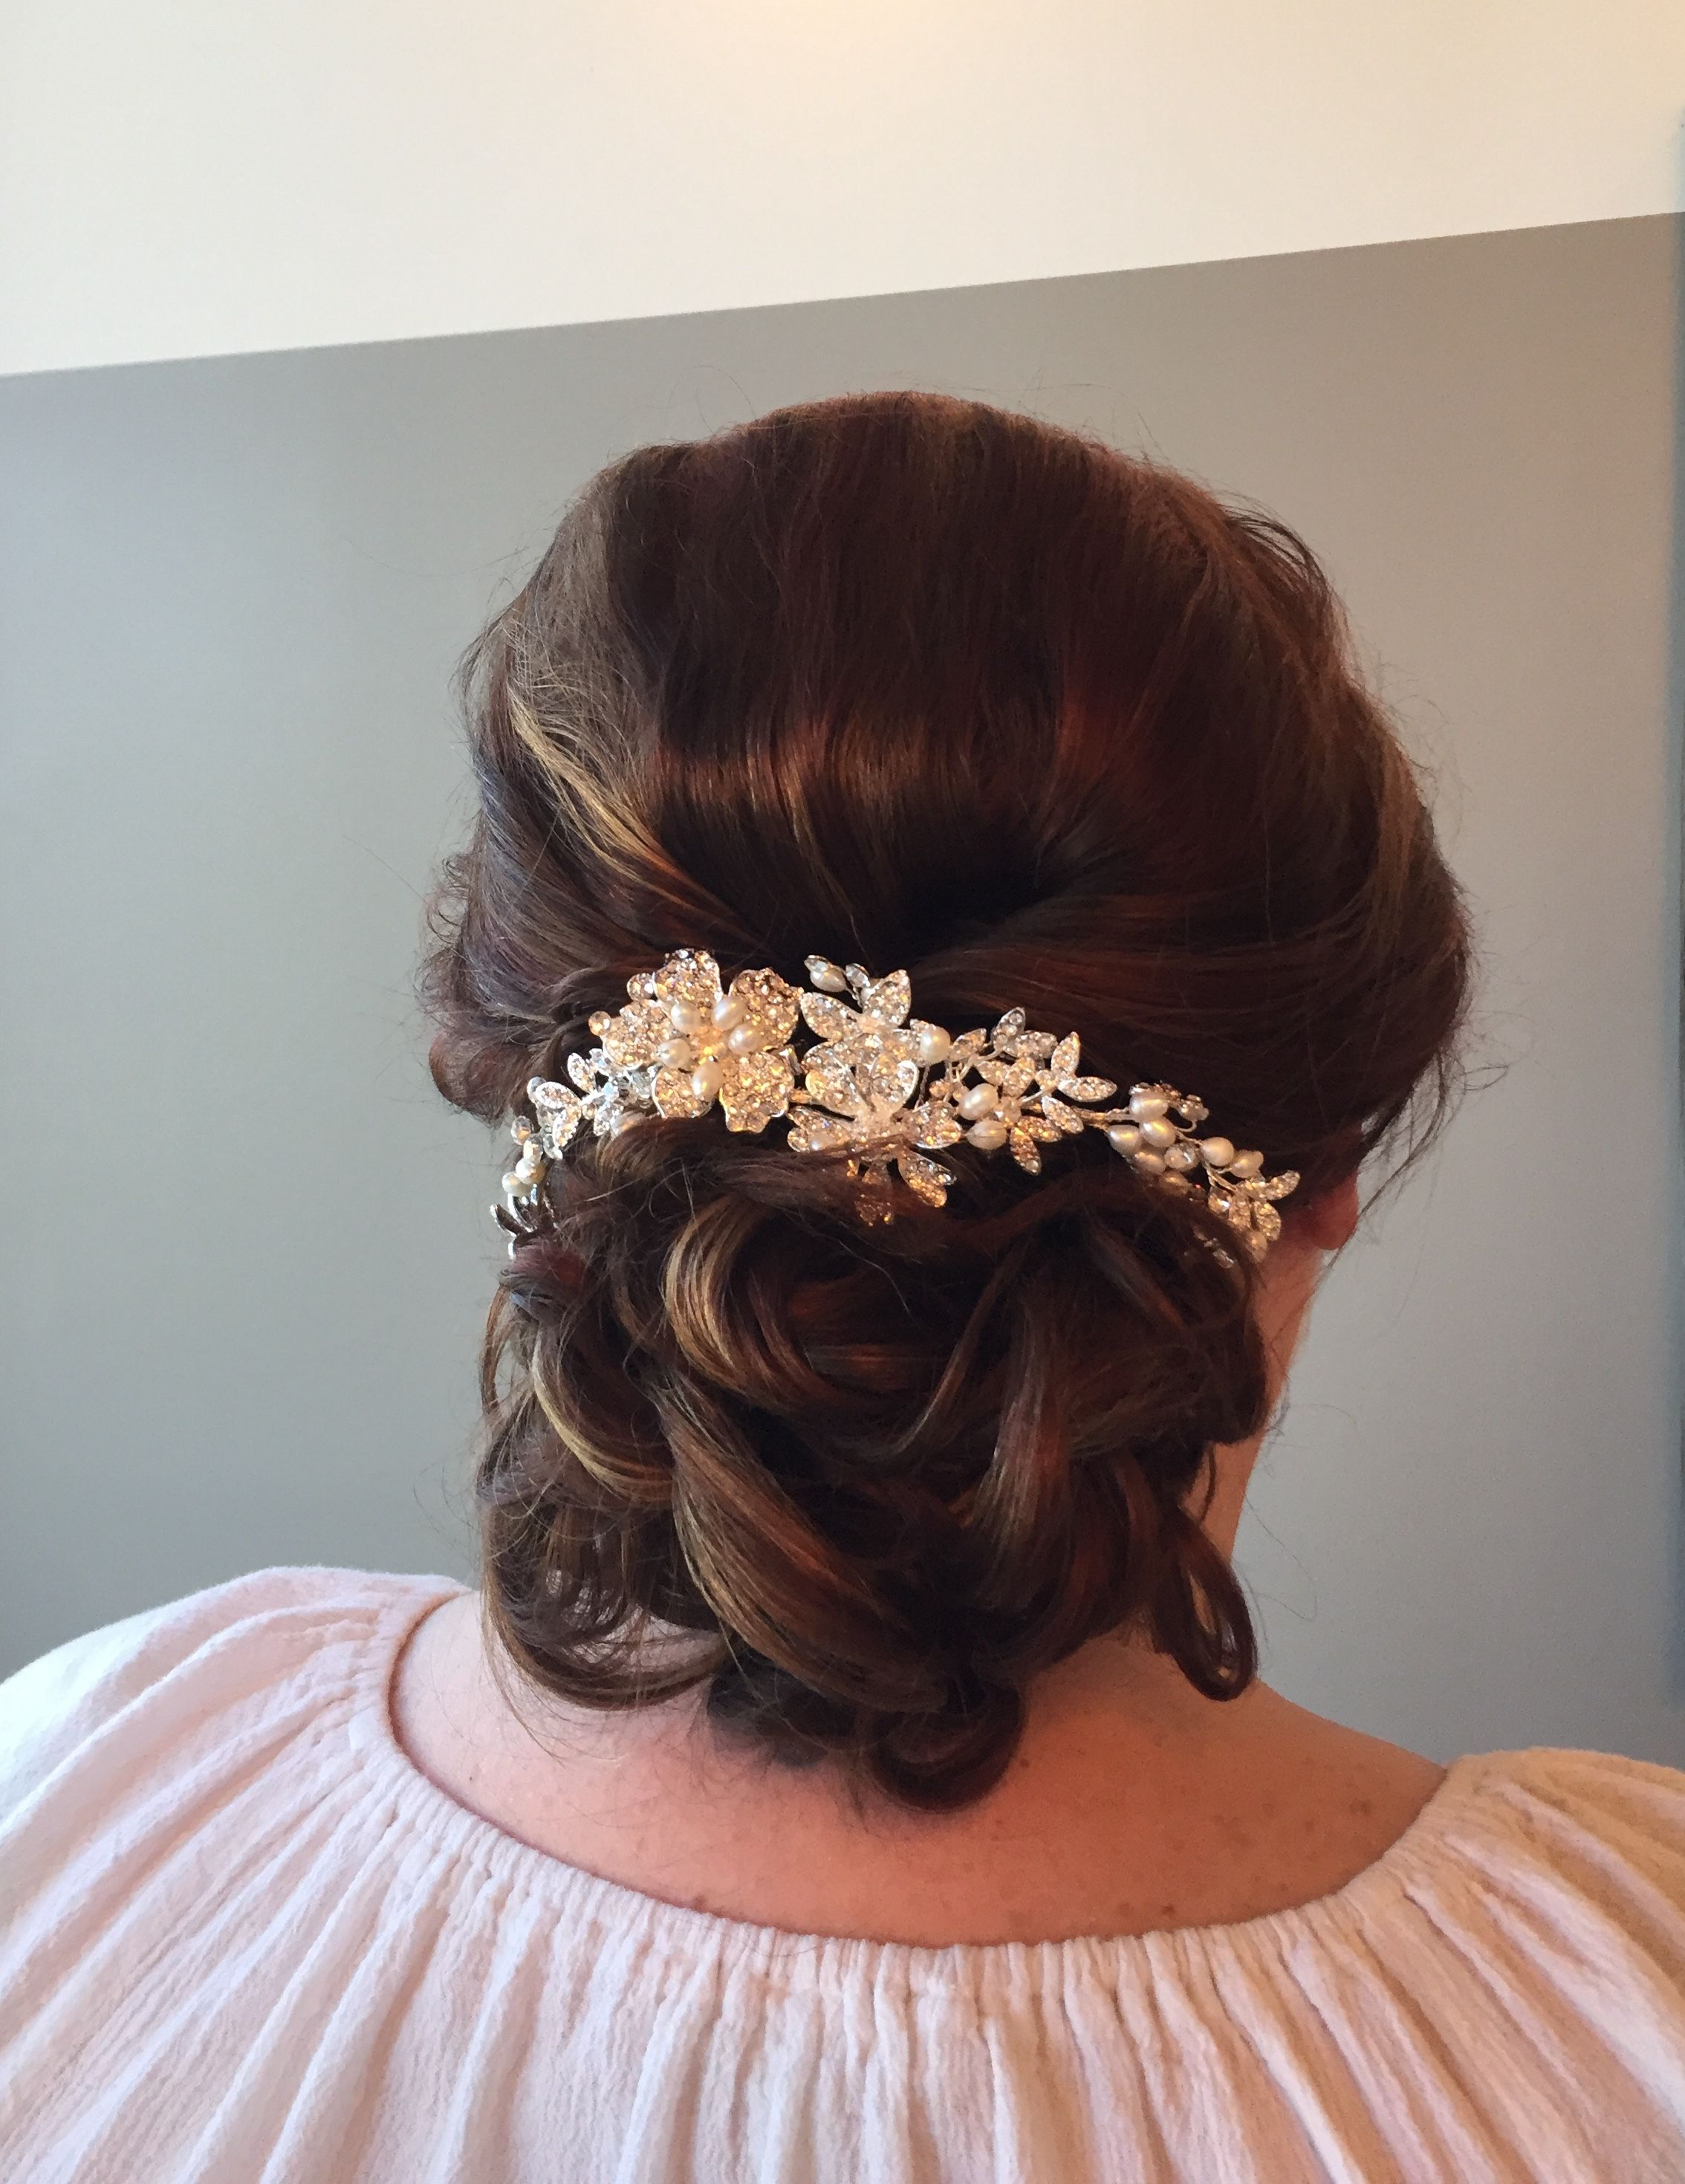 We used this bendable tiara to dress up the brides hairstyle